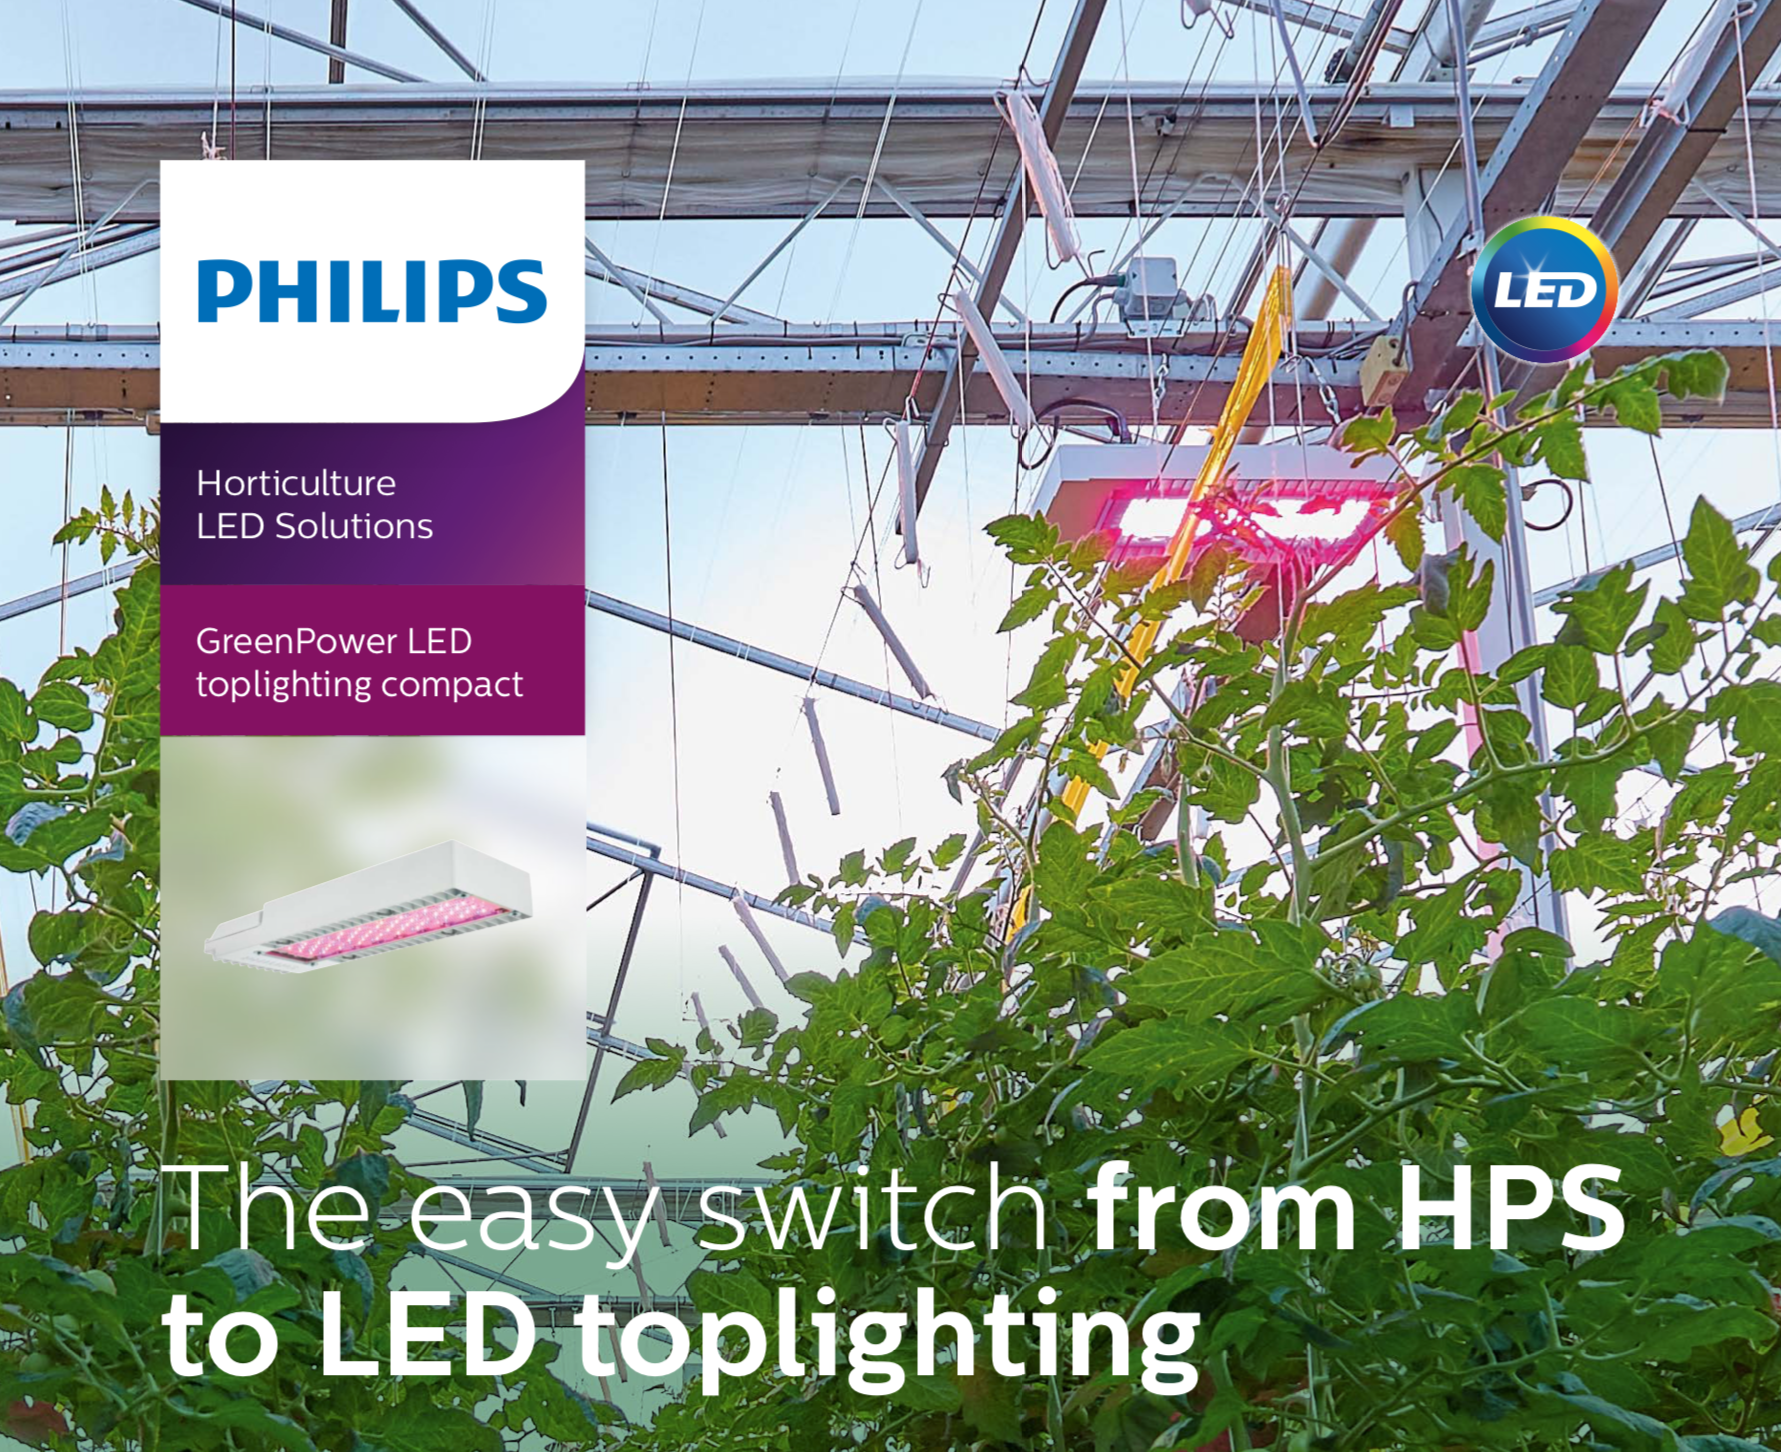 Philips HPS to LED